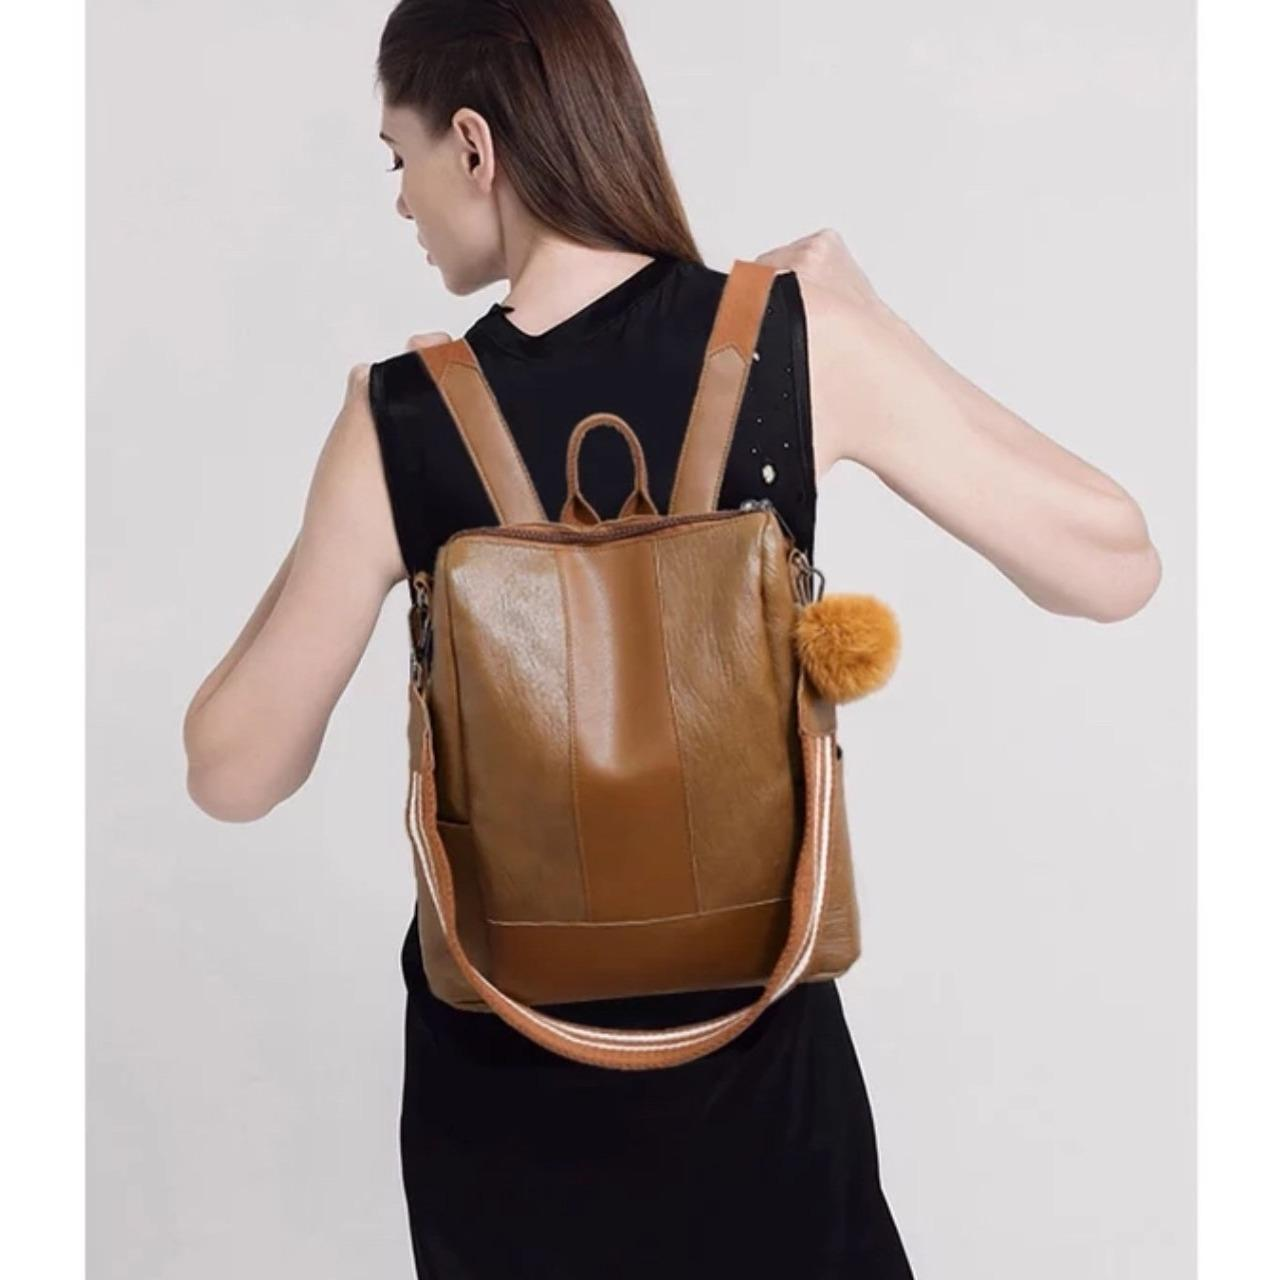 Price Ladies Backpack Ladies Bag Online Singapore